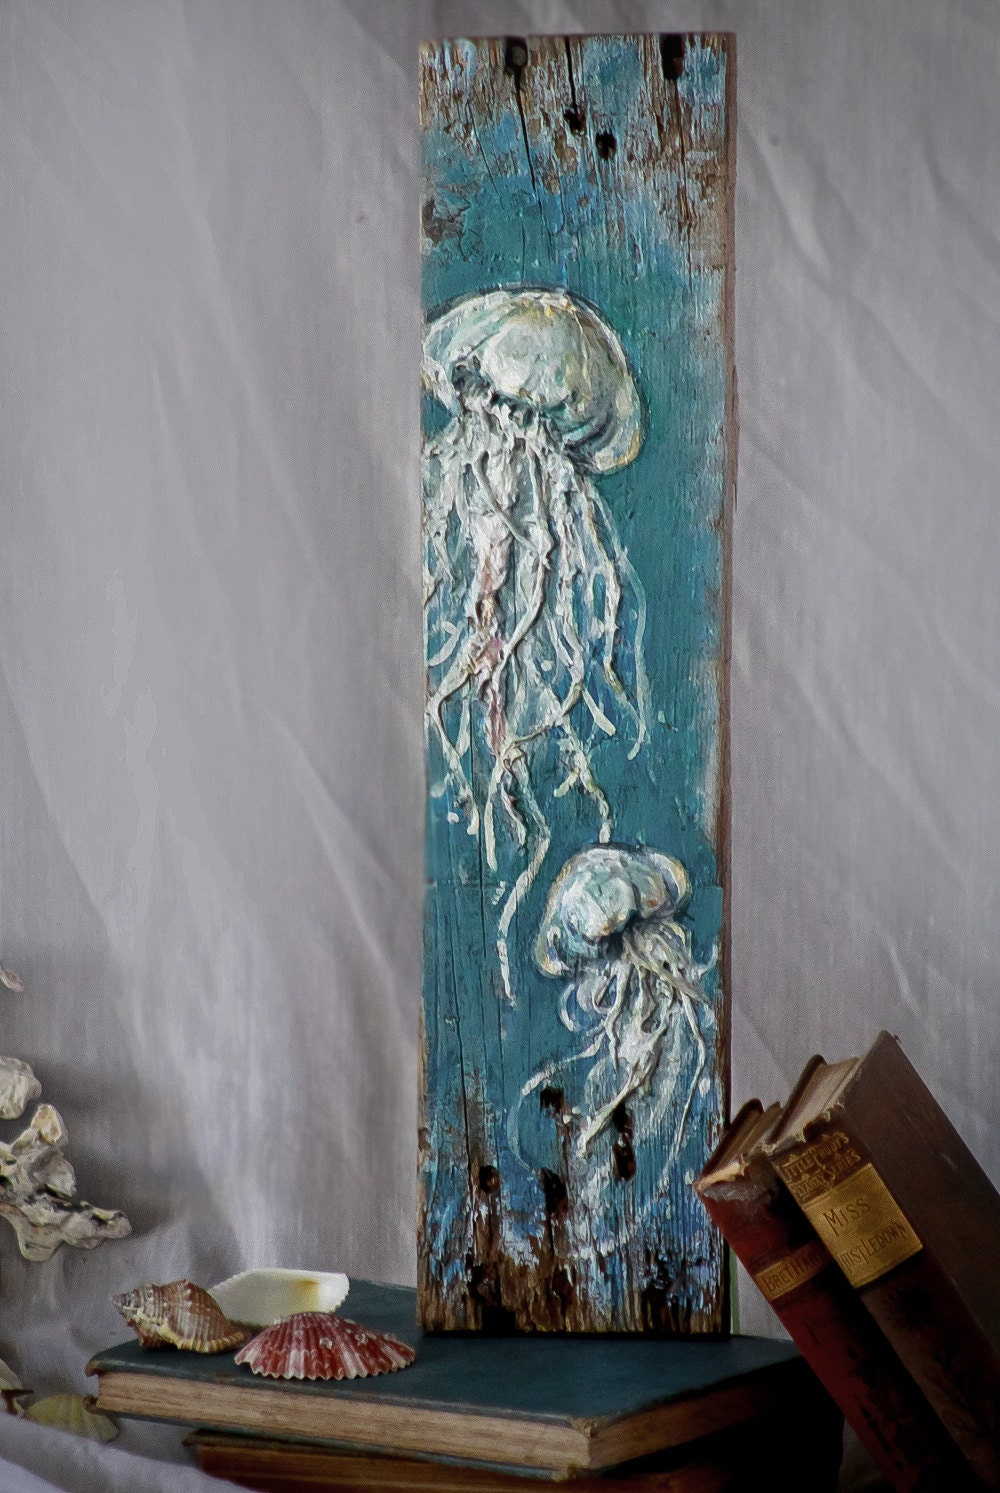 Beautiful Handmade Jellyfish Painting 3d Wall Sculpture Art By